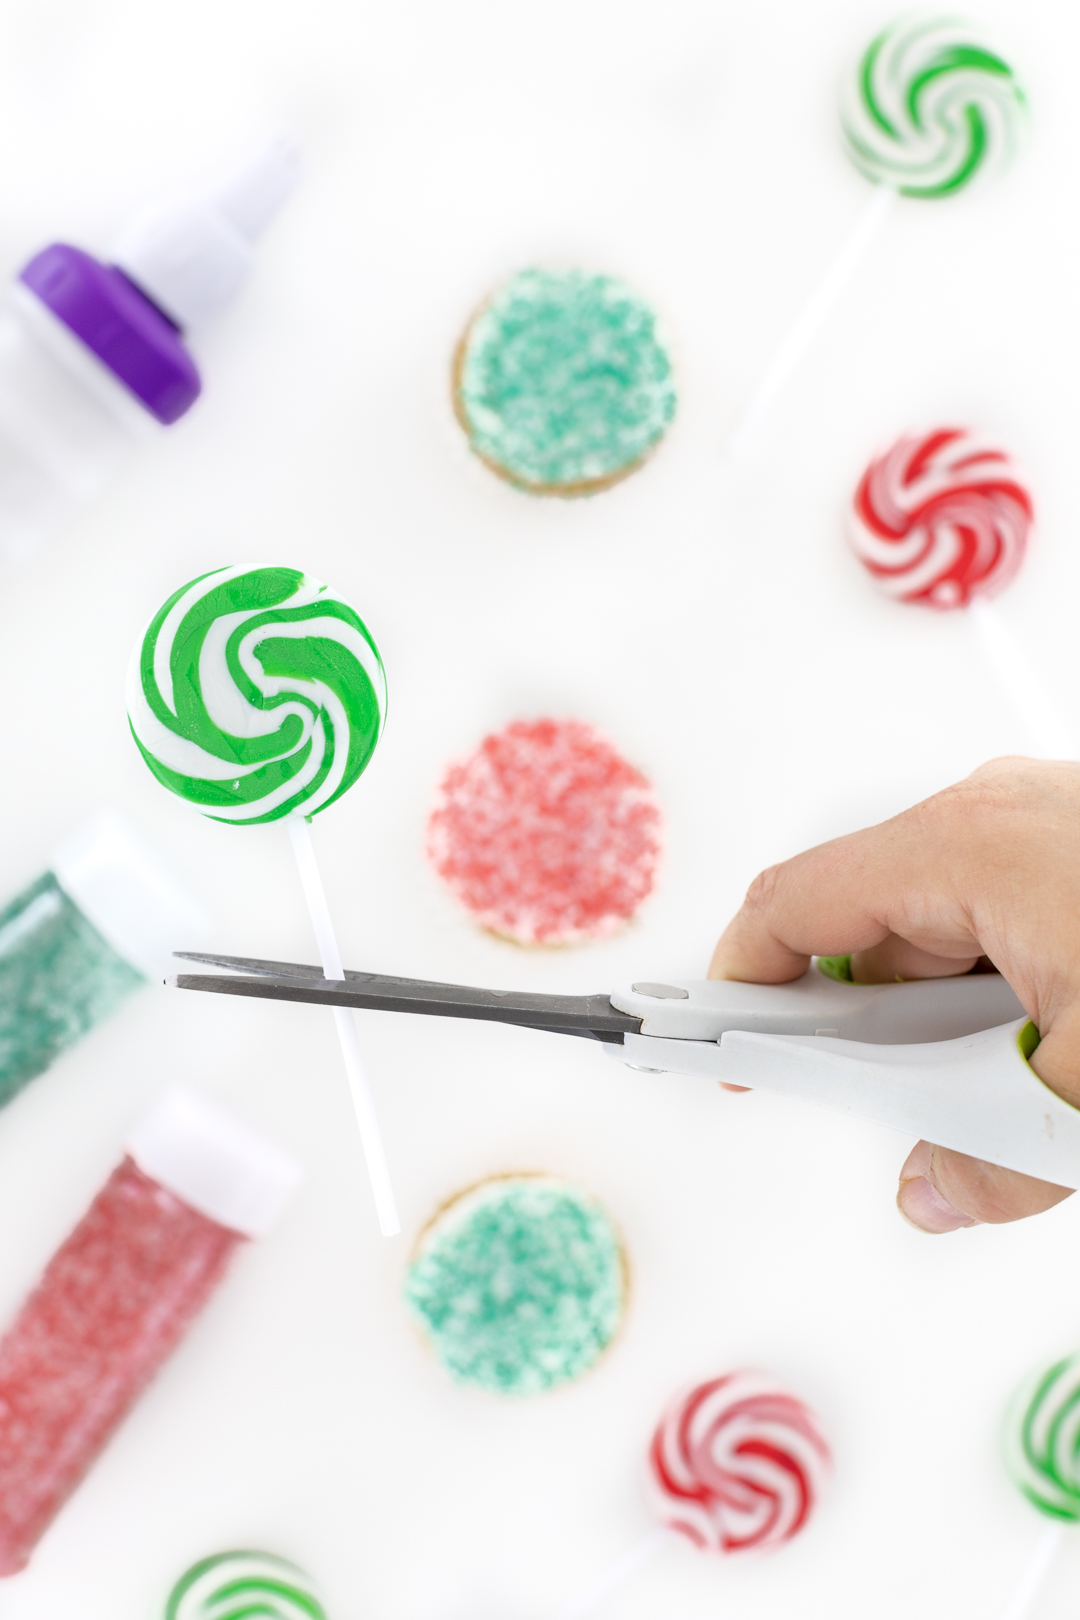 Trim lollipop sticks to insert them into the cupcakes